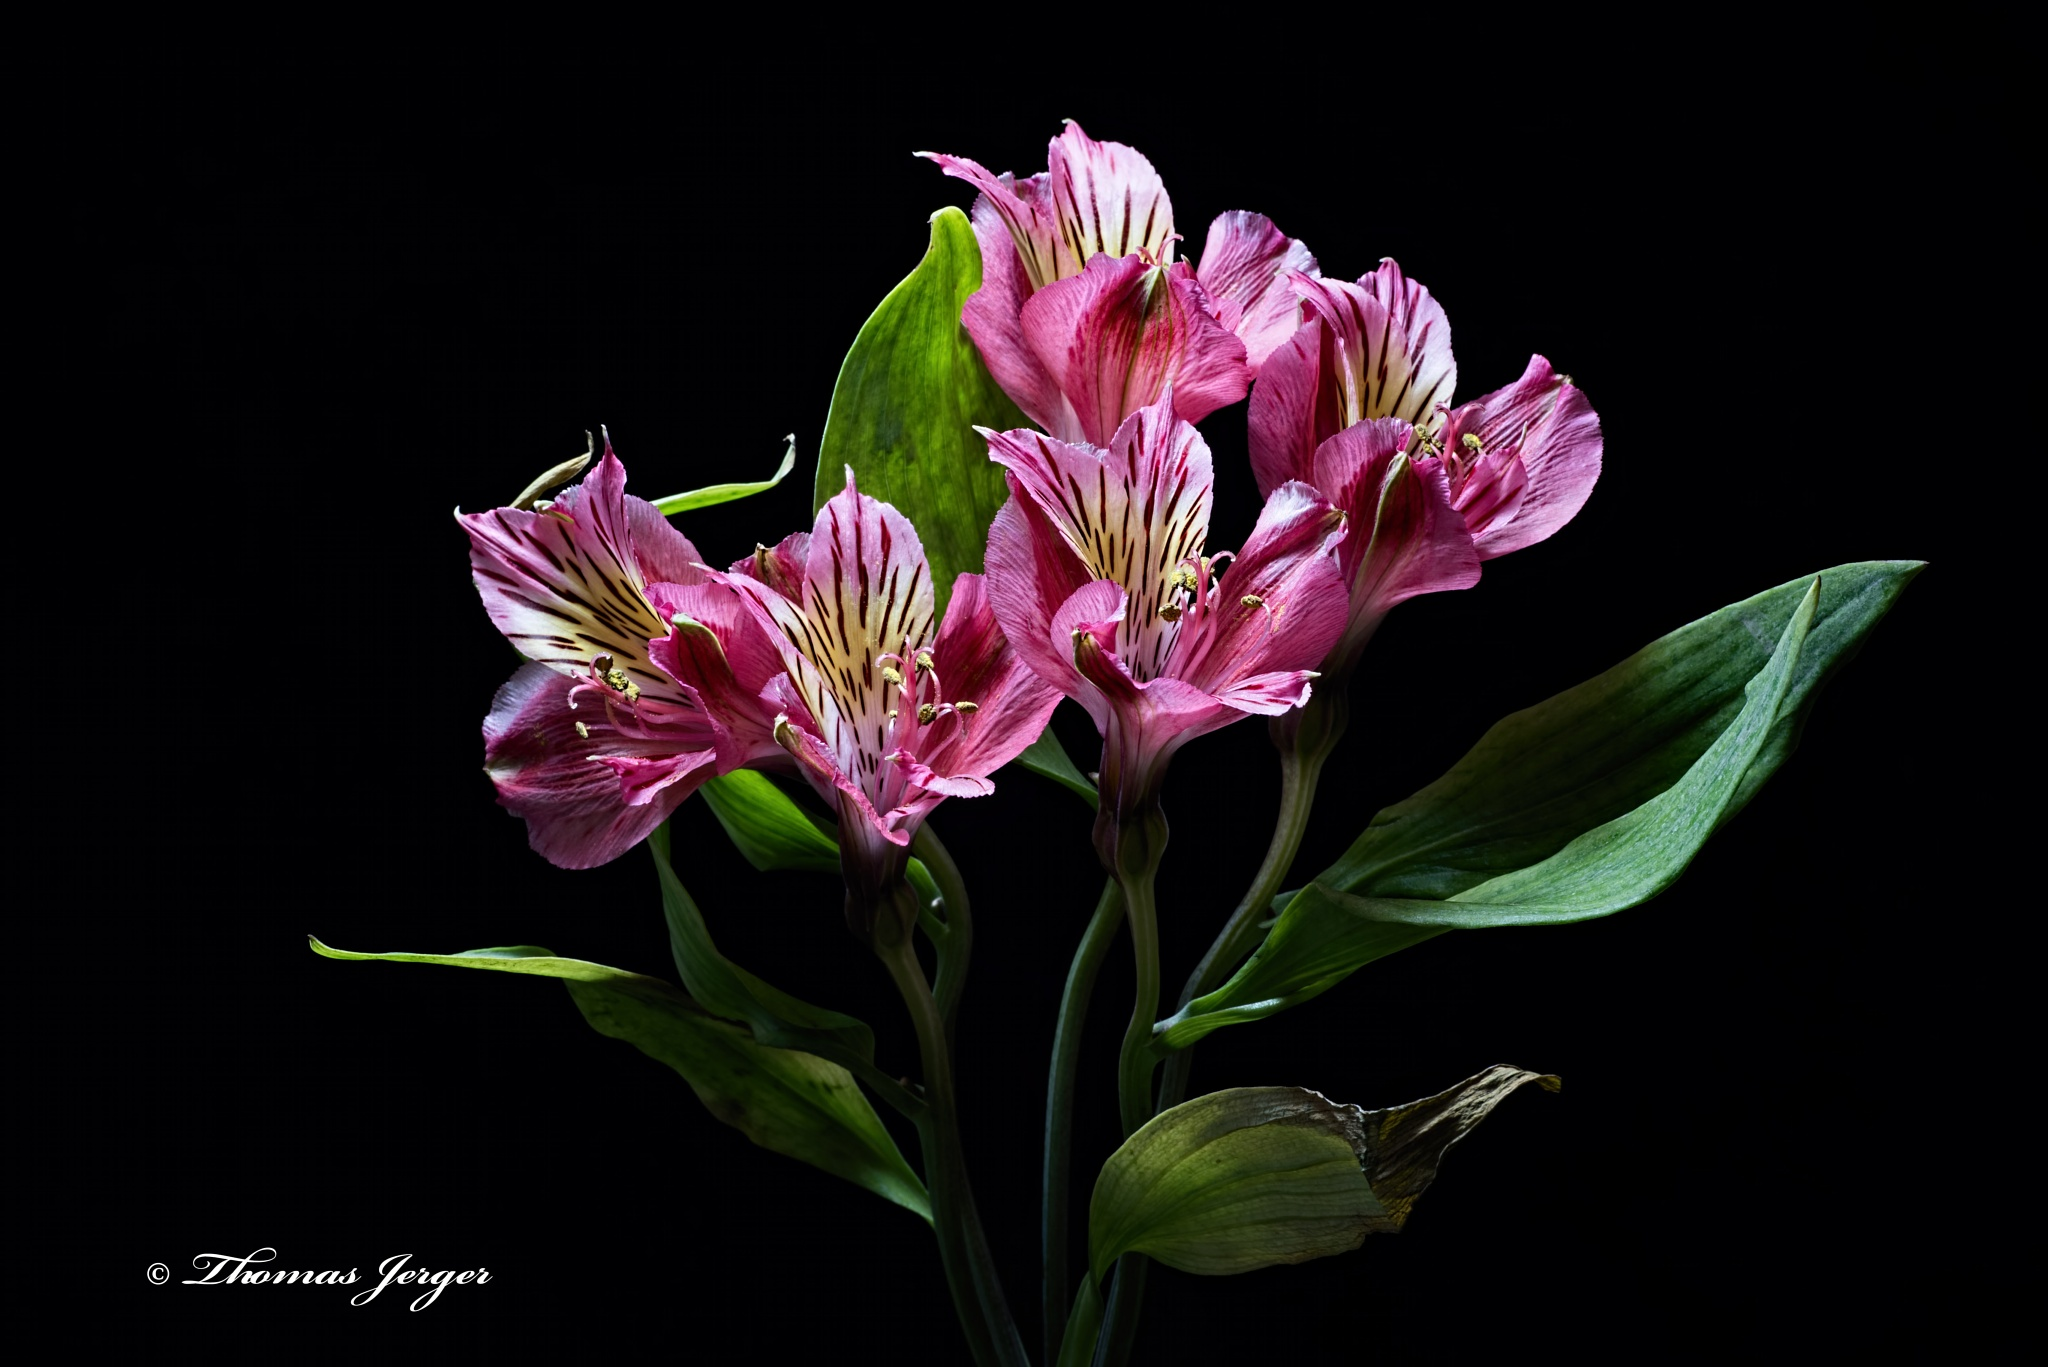 Alstroemeria Group 0324 by ThomasJerger